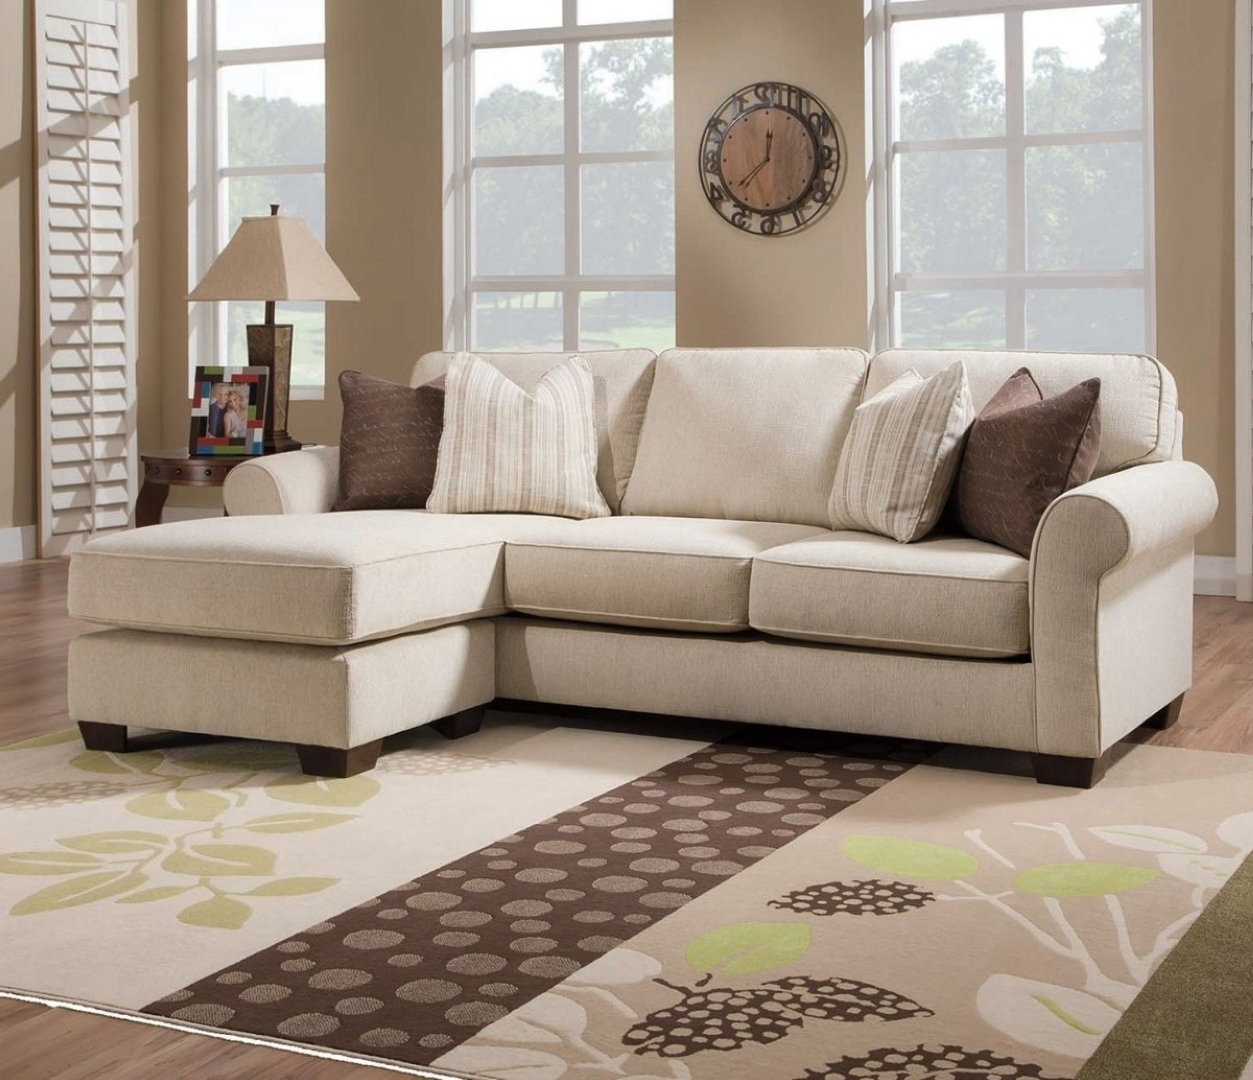 Popular Canada Sectional Sofas For Small Spaces For Small Modern Sofa, Contemporary Sofas And Couches Small (View 13 of 15)